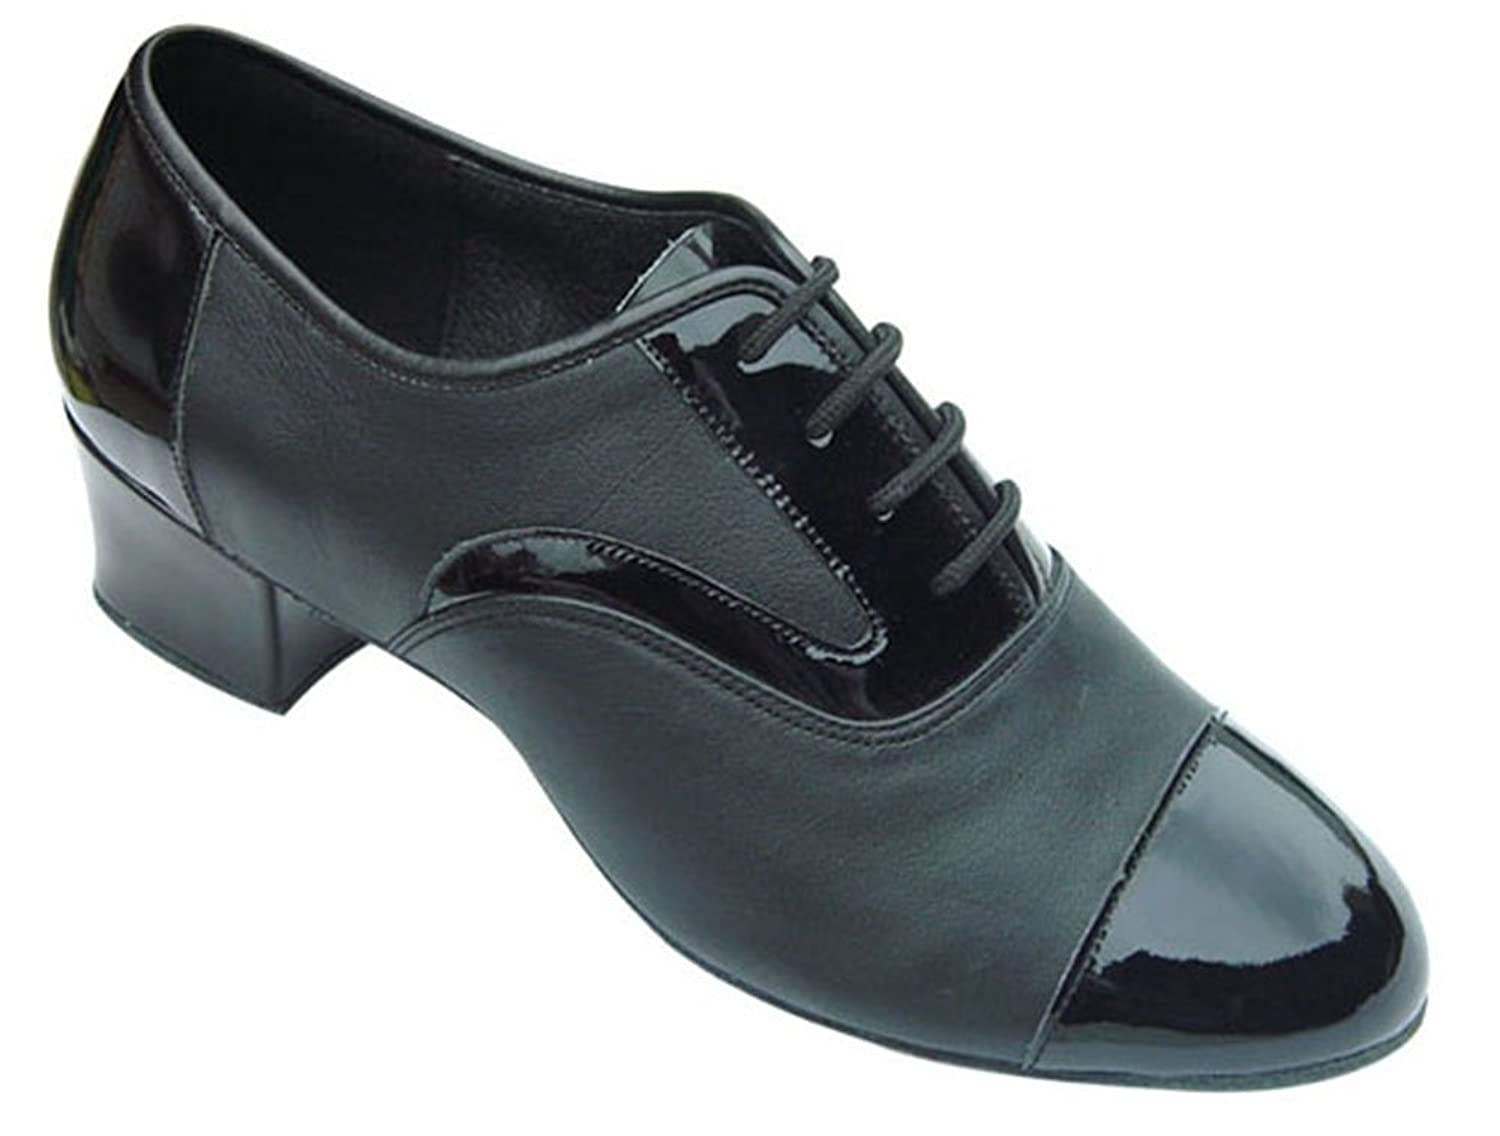 Retro Style Dance Shoes Mens Ballroom Salsa Wedding Competition Dance Shoes The Edward 1 Heel $74.99 AT vintagedancer.com